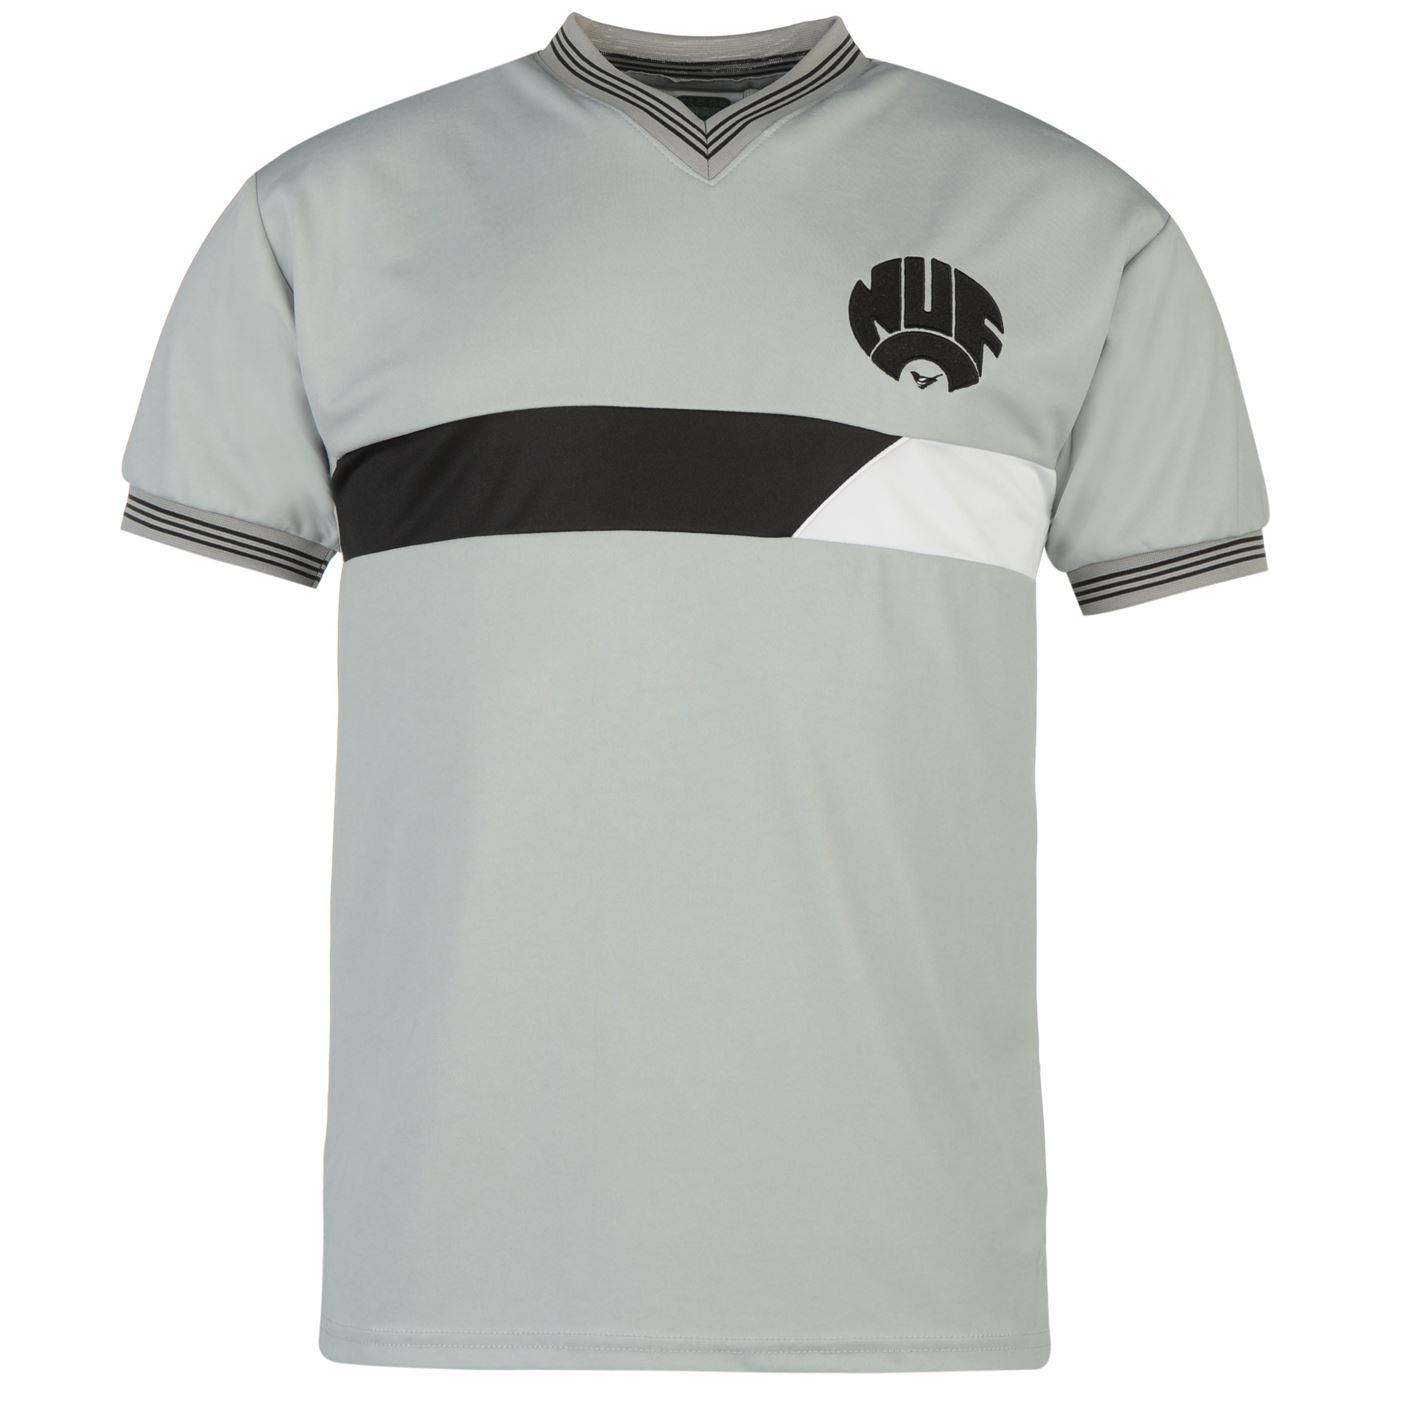 Awesome - 8 Newcastle United Retro Kits Released - Footy ...